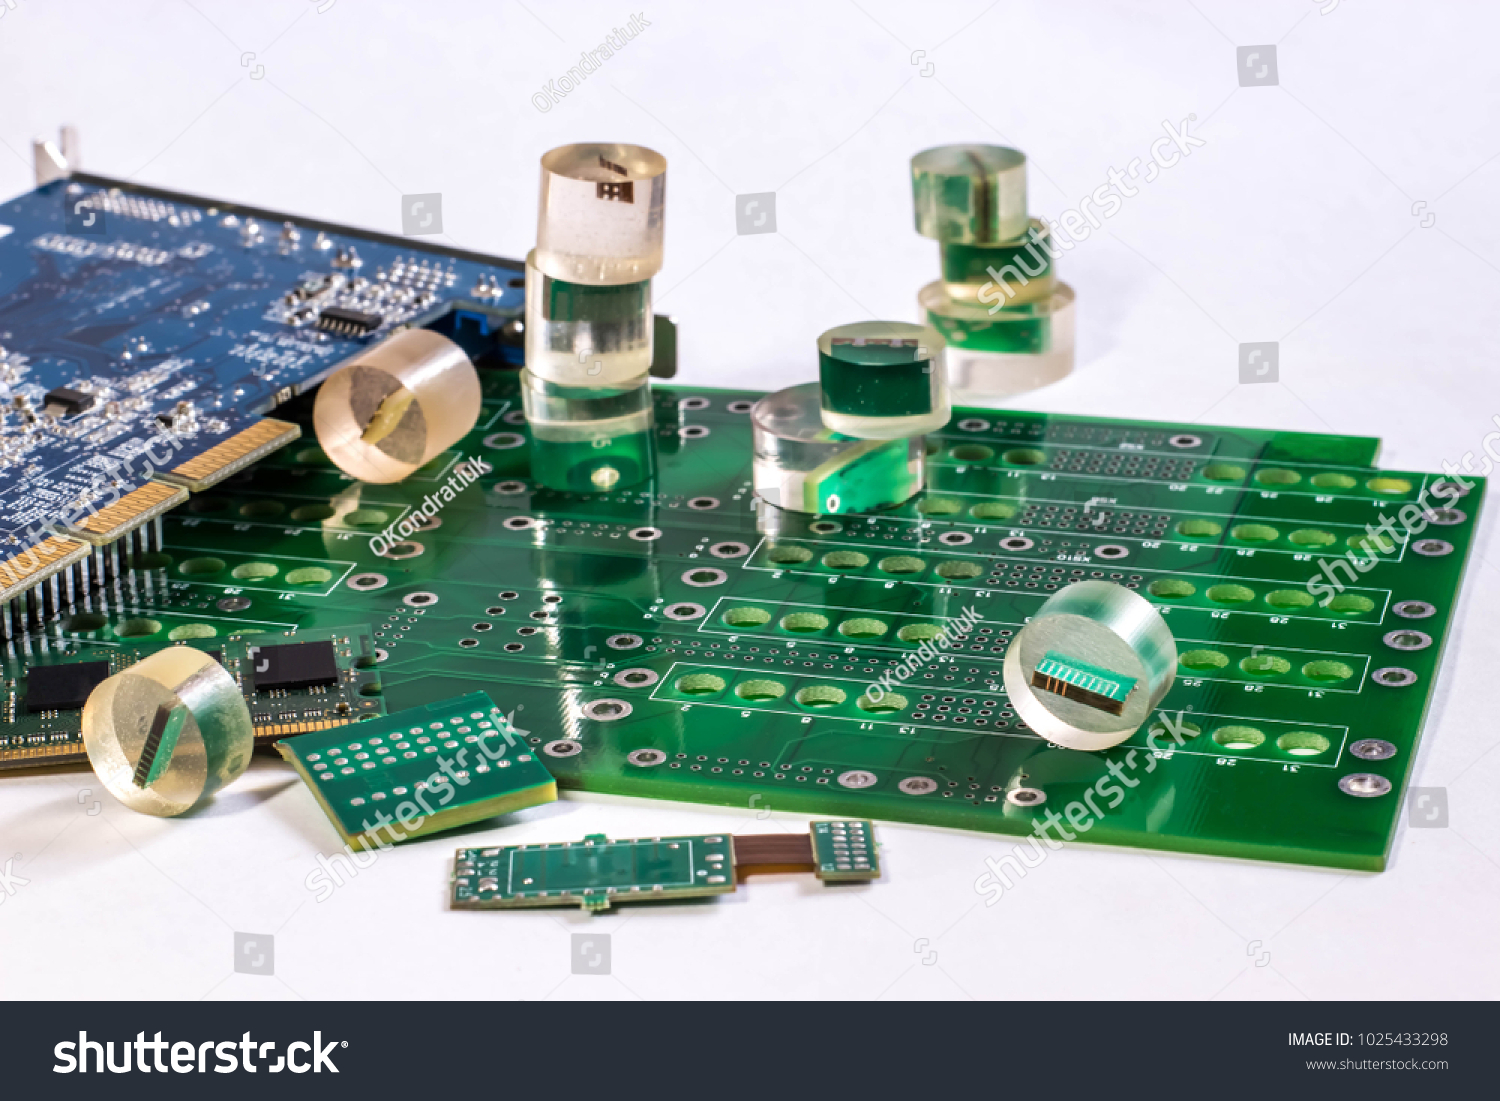 Printed Circuit Boards Pcb Samples Epoxy Stock Photo Edit Now Board Photos Images Pictures Shutterstock And In Resin